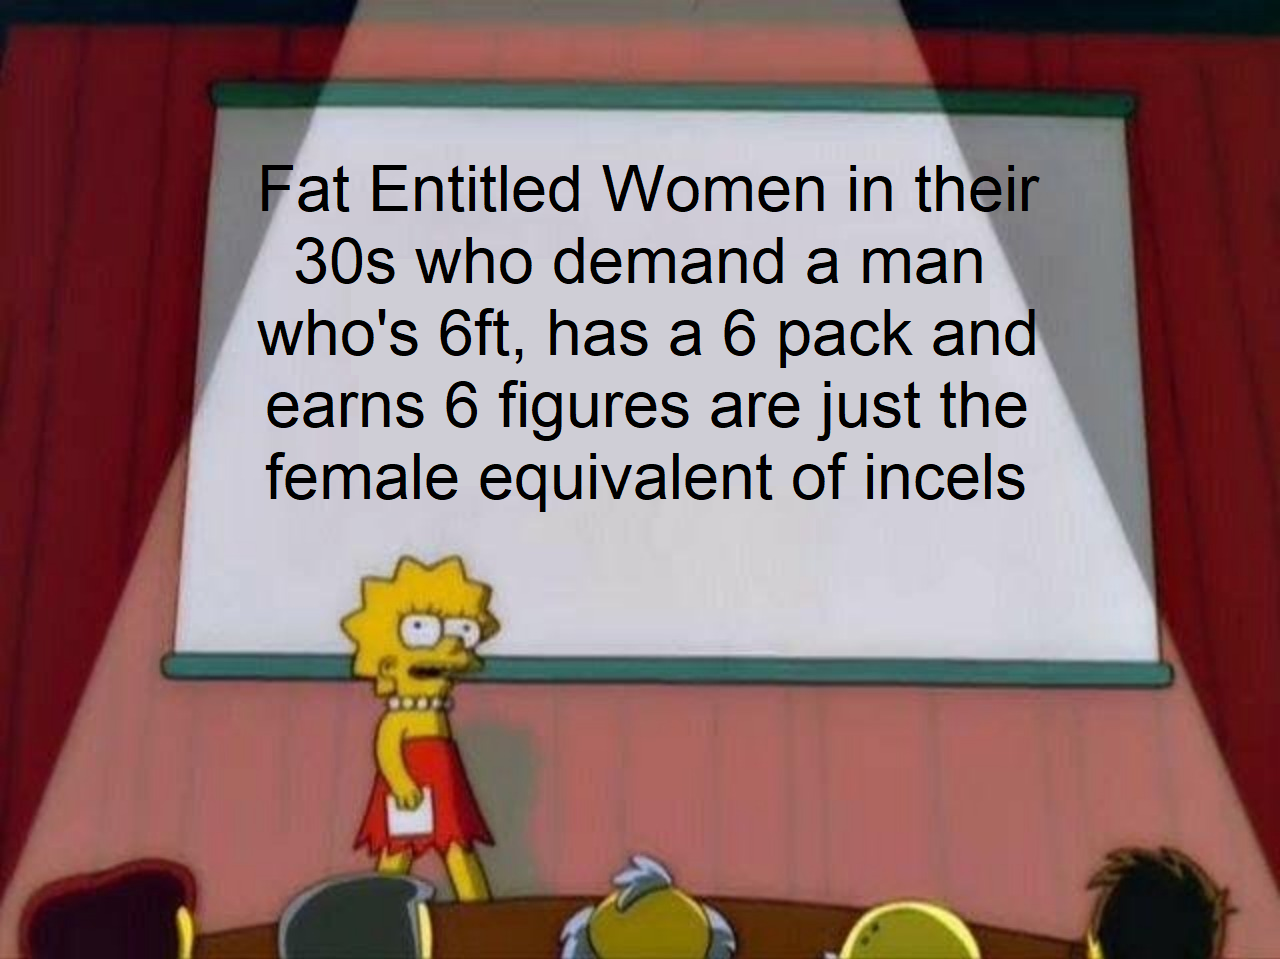 THICC is just a meme to normalise fat women! Only date anorexics